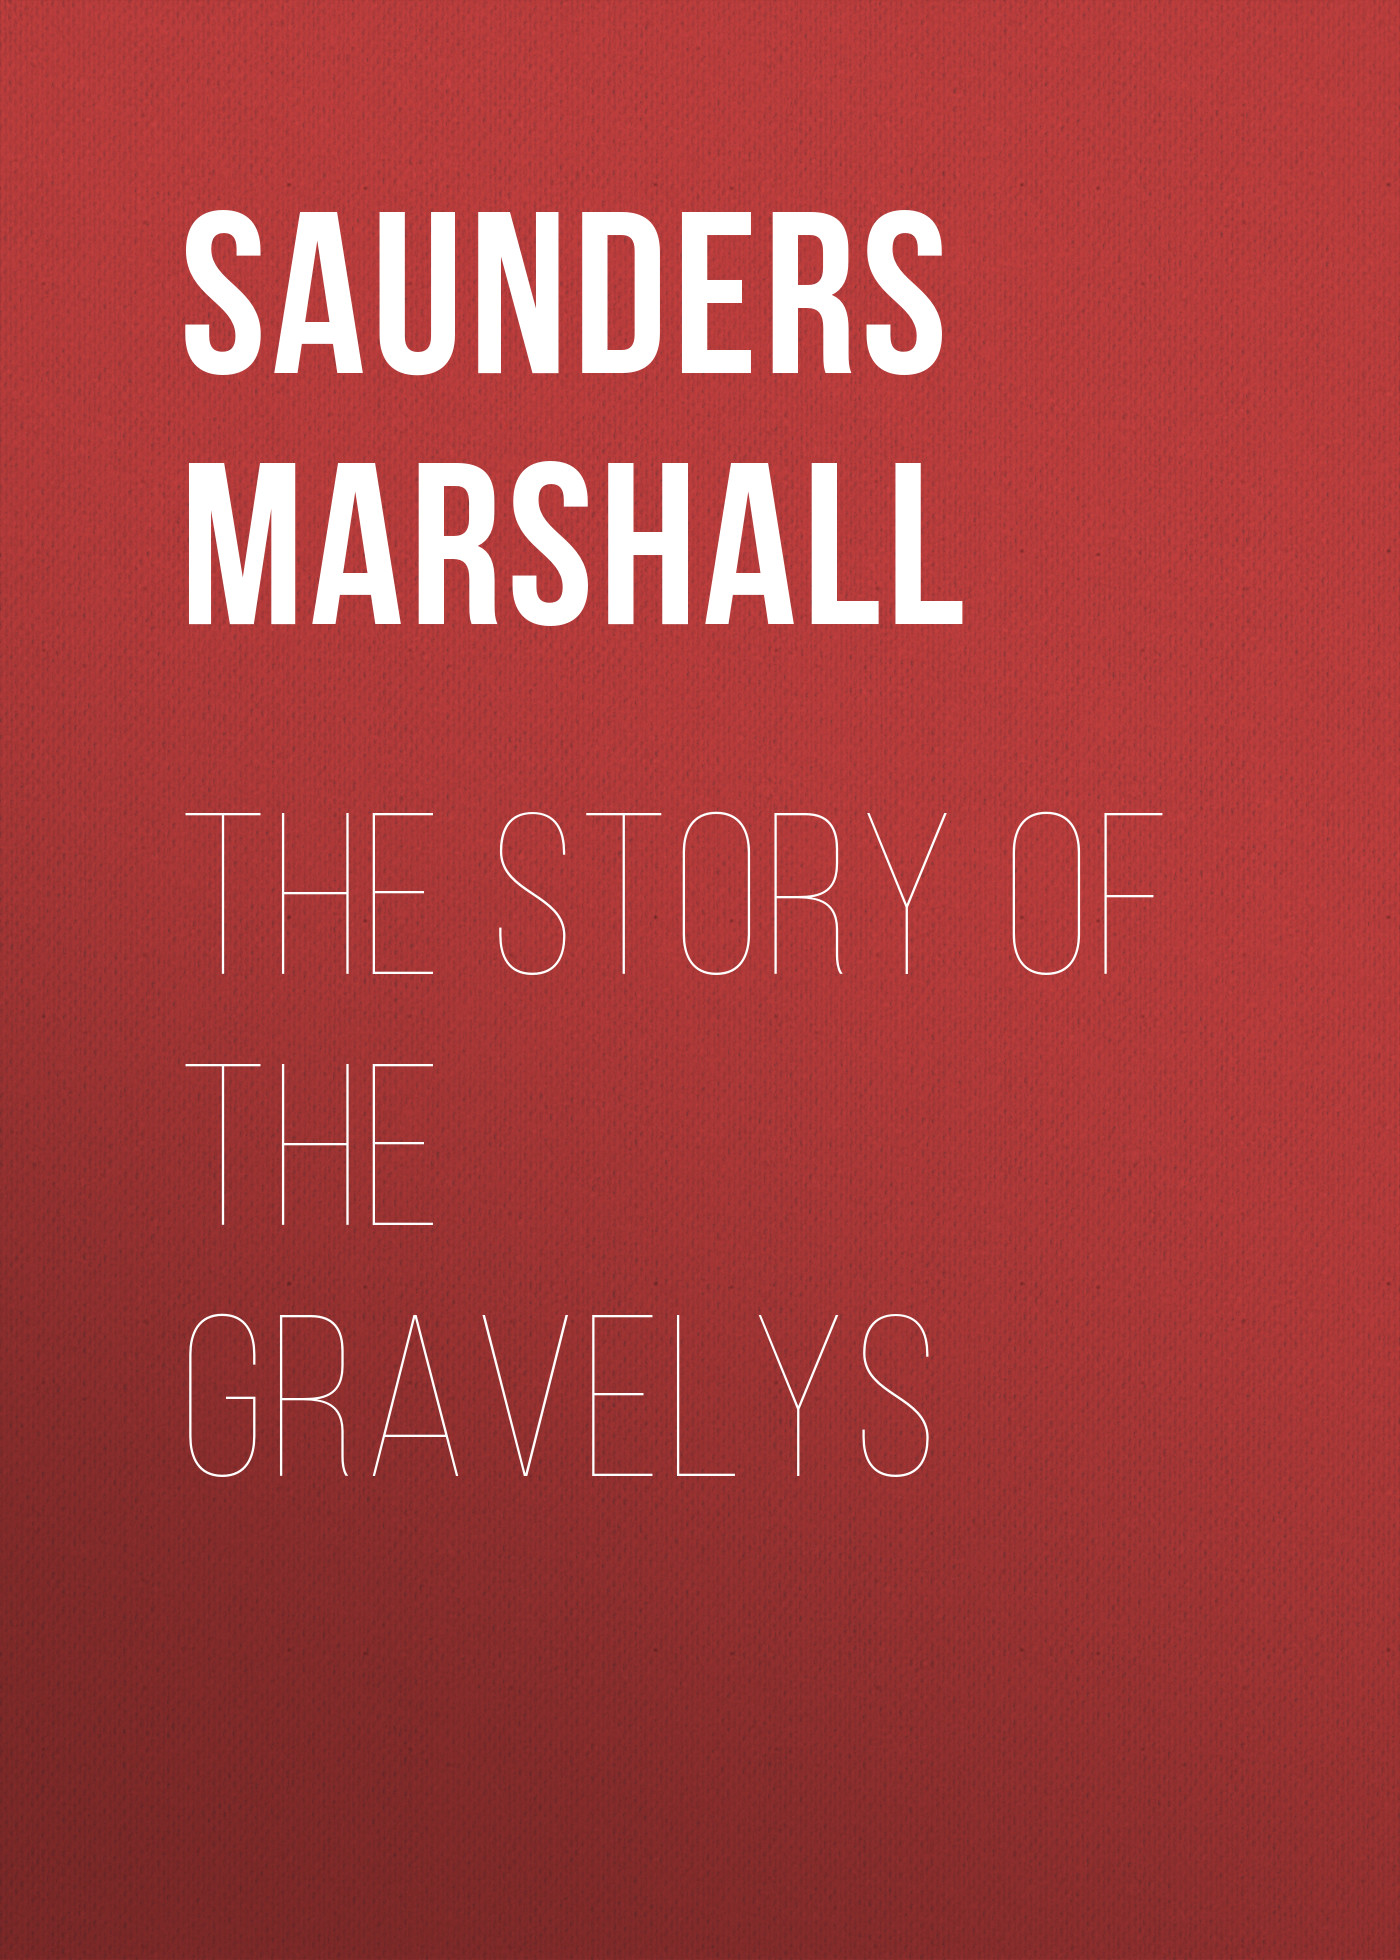 Saunders Marshall The Story of the Gravelys saunders marshall the story of the gravelys